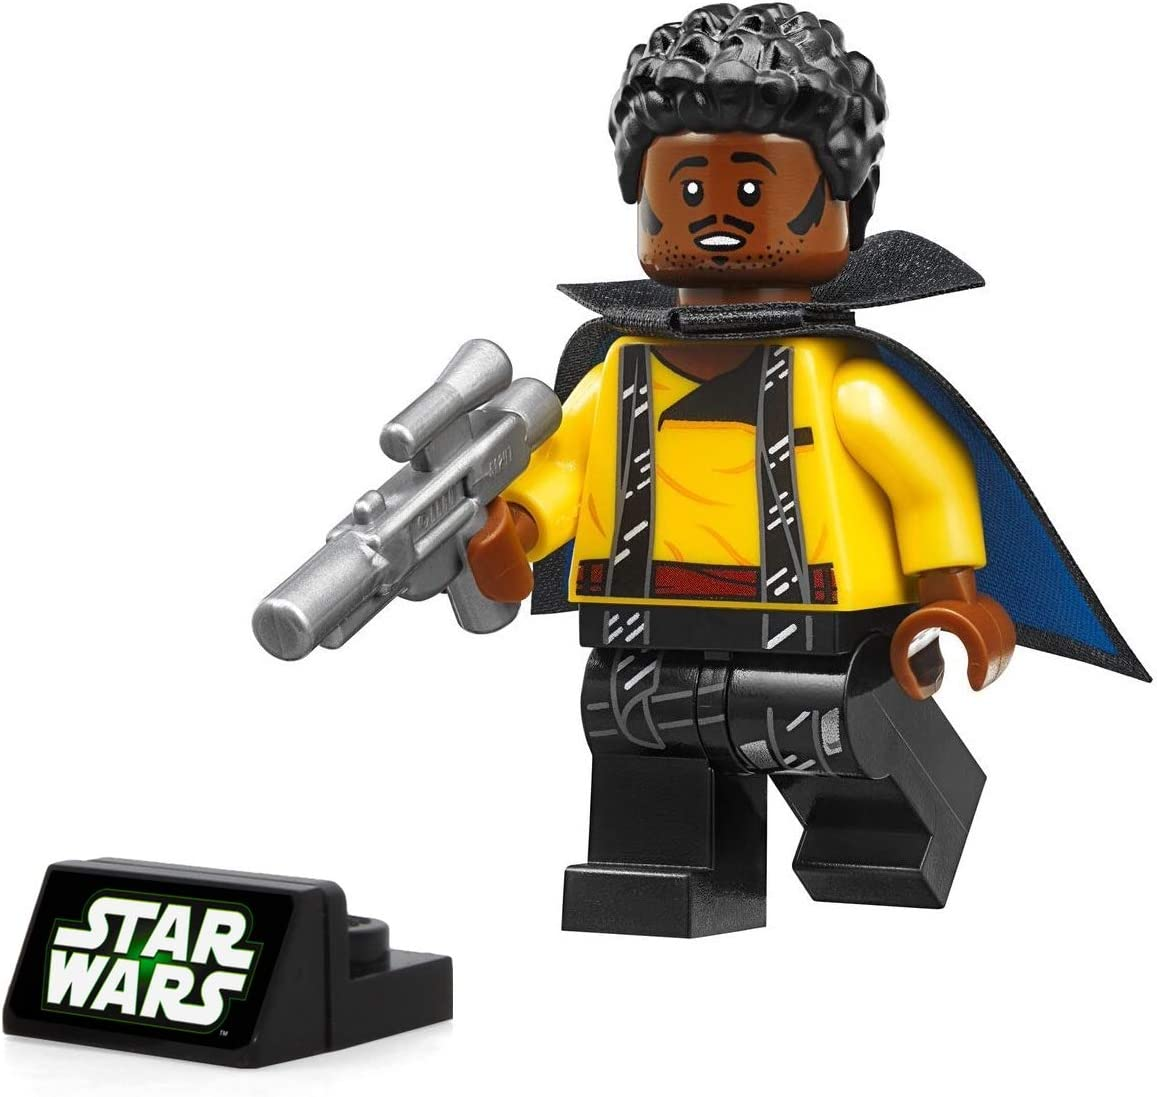 LEGO Solo: A Star Wars Story Minifigure - Lando Calrissian (with Blaster and Display Stand) 75212